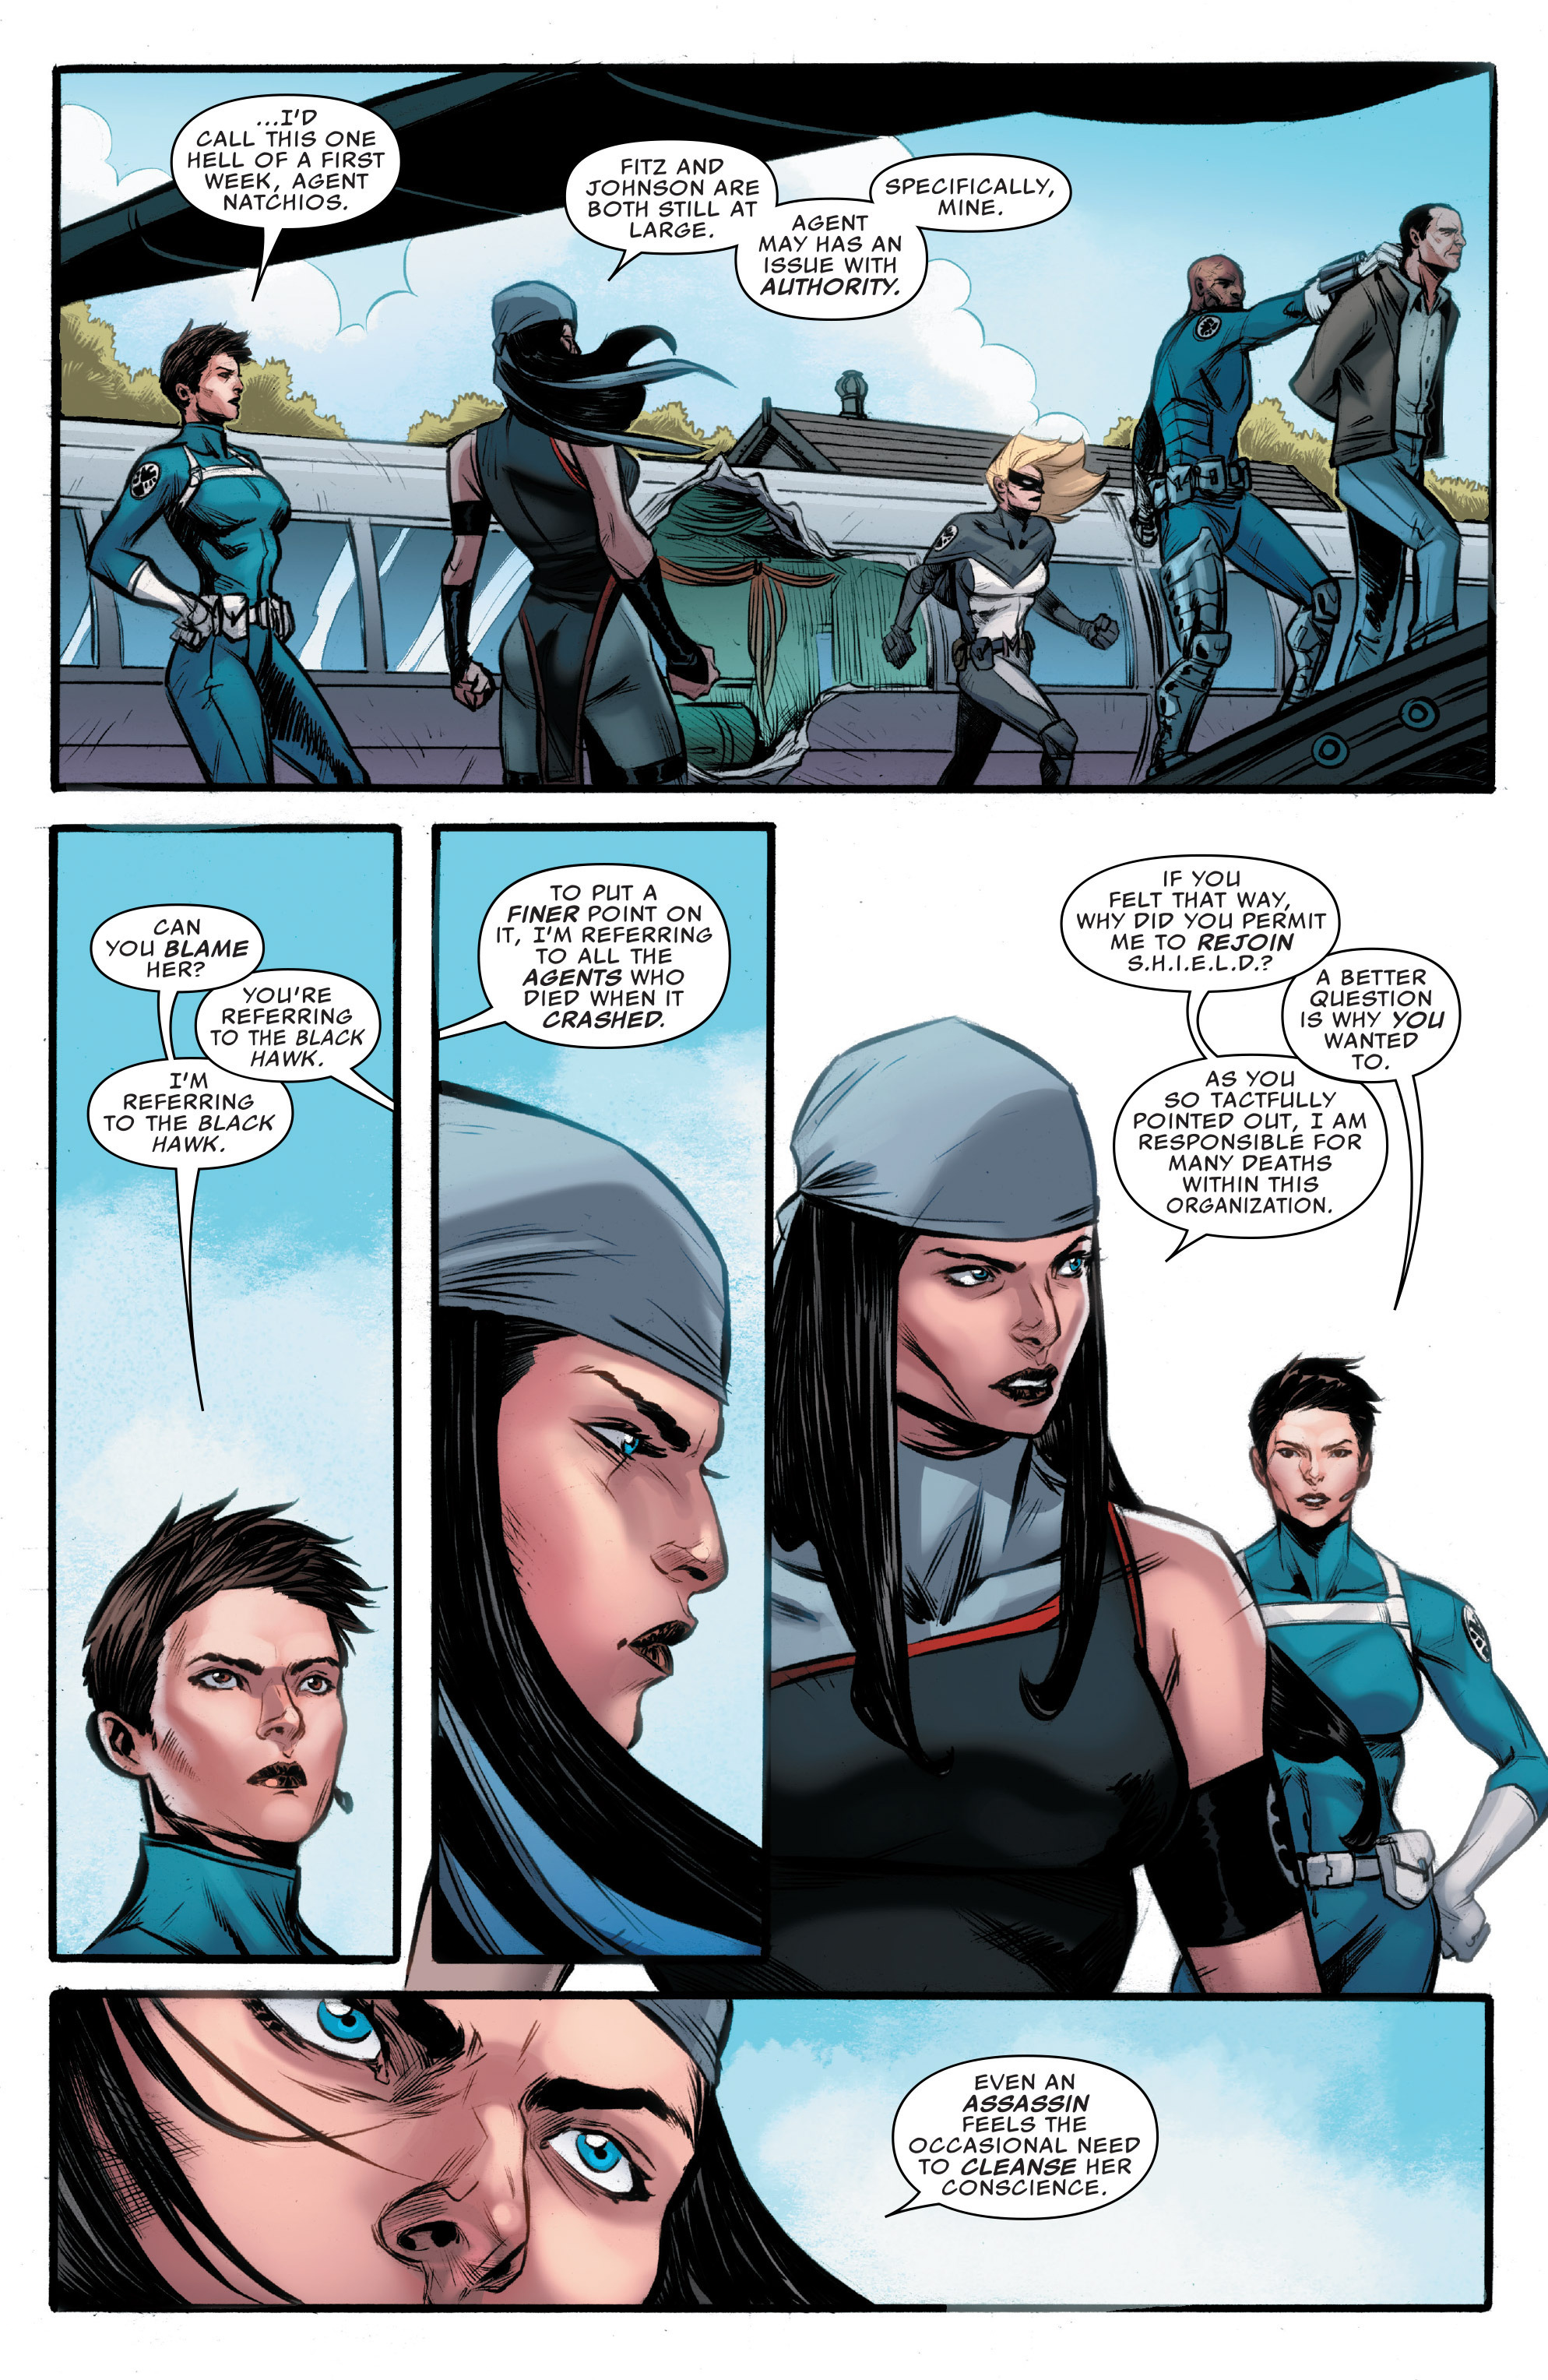 Read online Agents of S.H.I.E.L.D. comic -  Issue #9 - 21